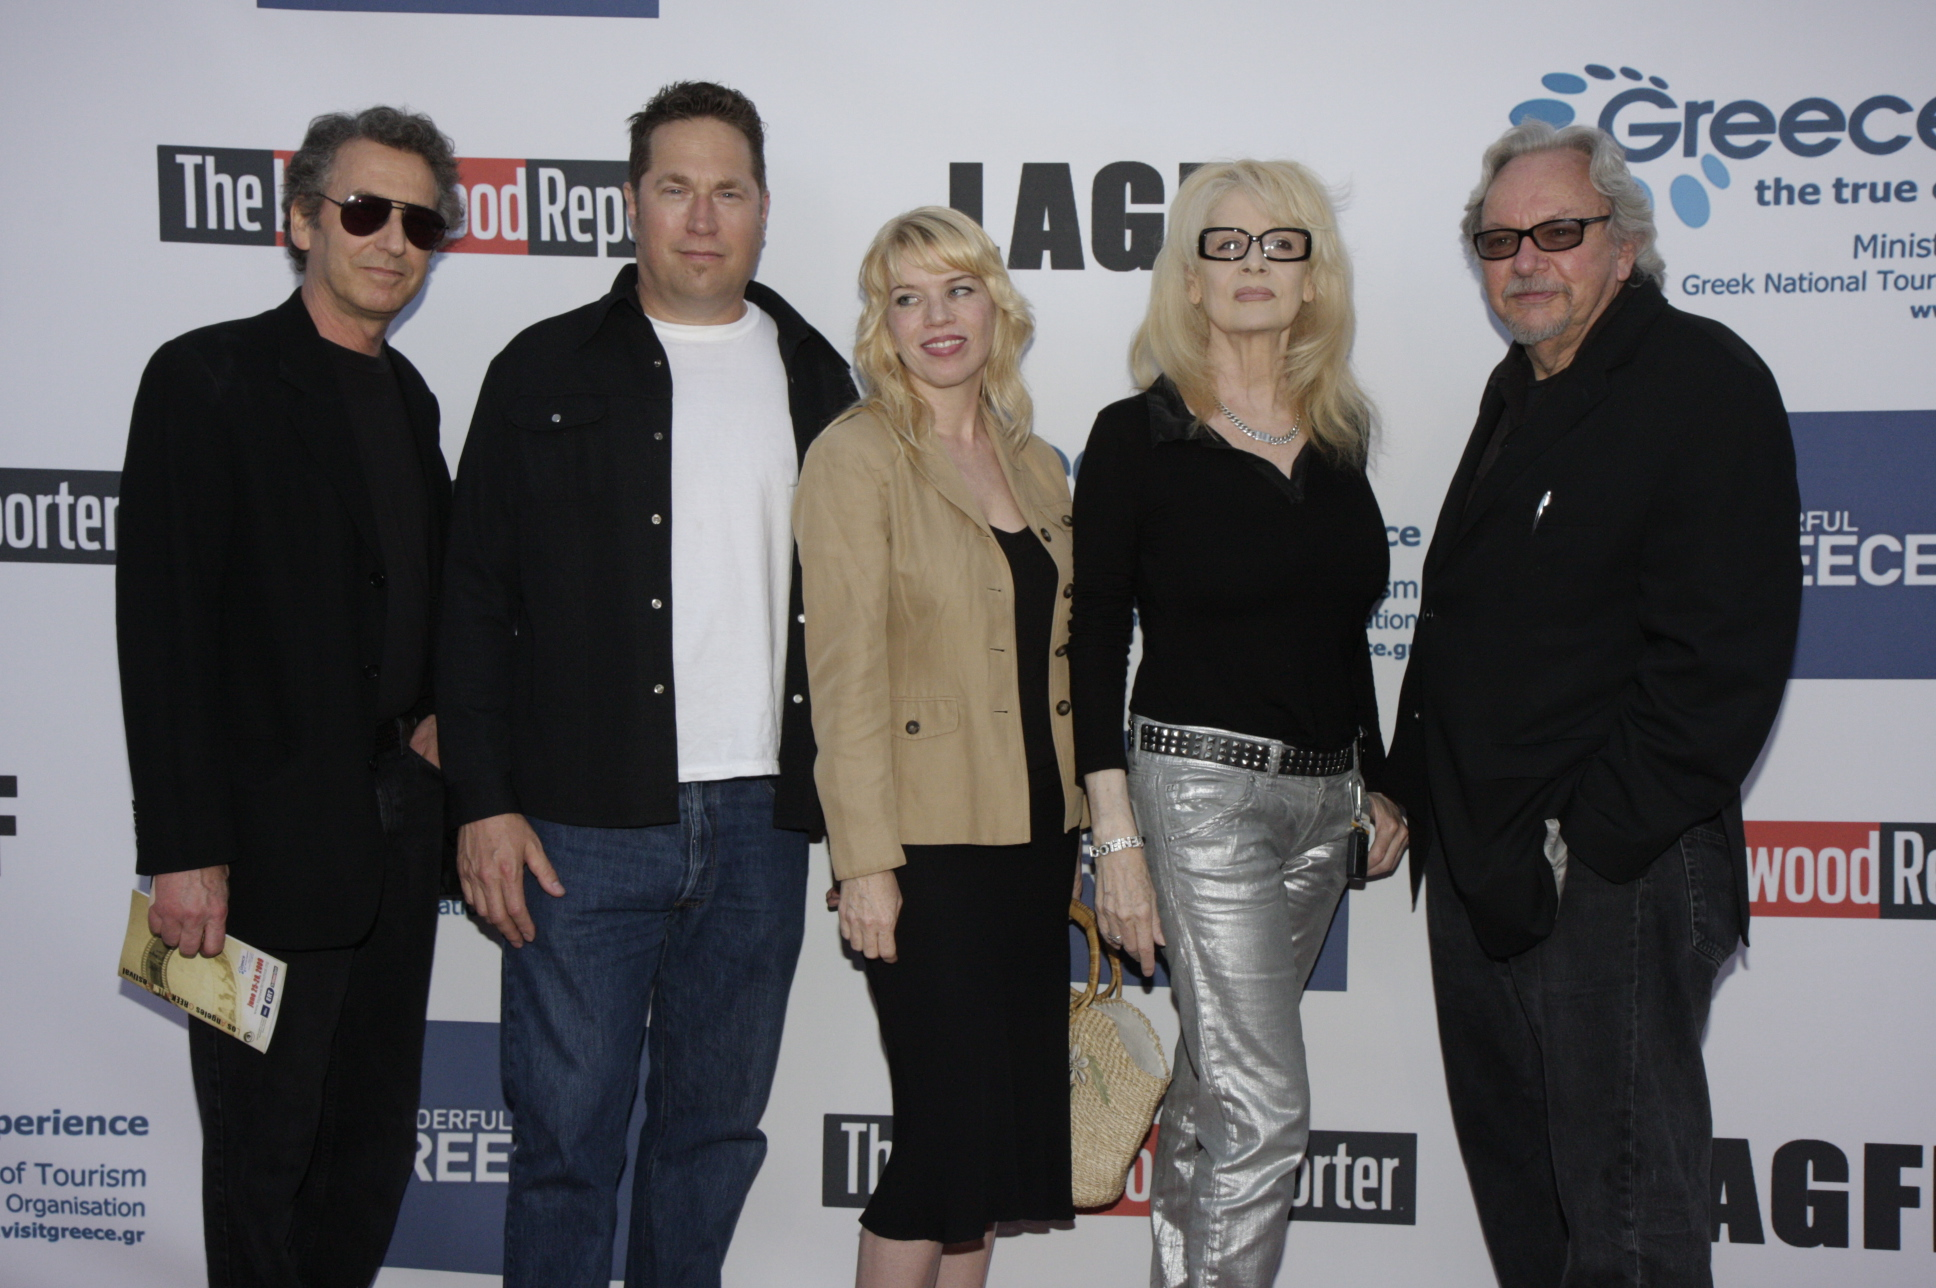 Ross Albert, Chris Pedersen, Christina Beck, Penelope Spheeris, Bob Rosen